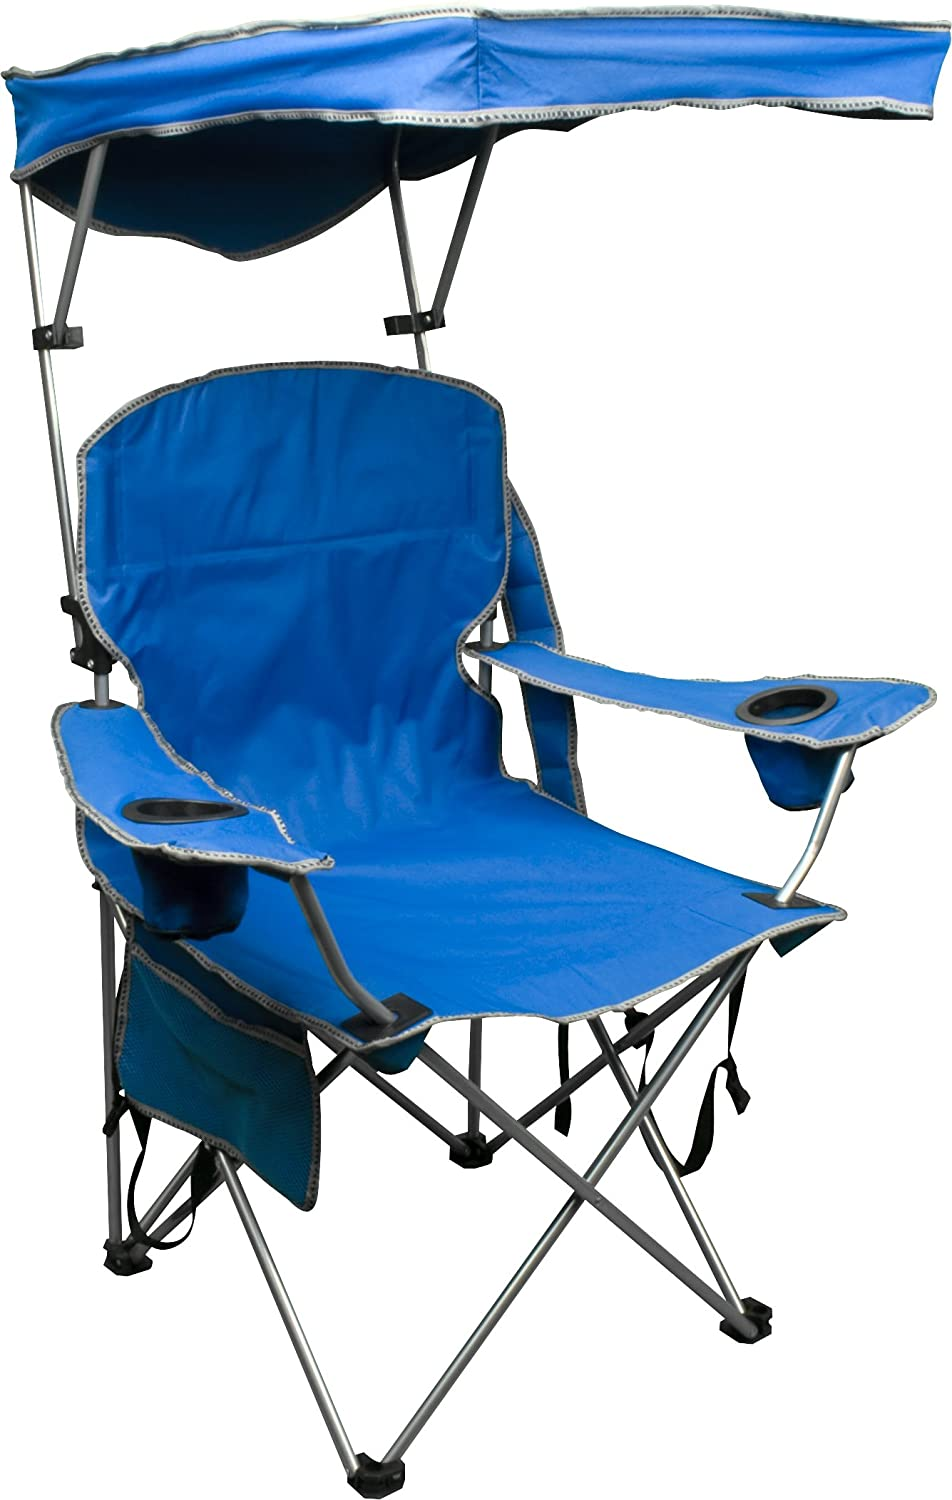 Top 10 Best Folding Beach Chairs For Summer 2015 On